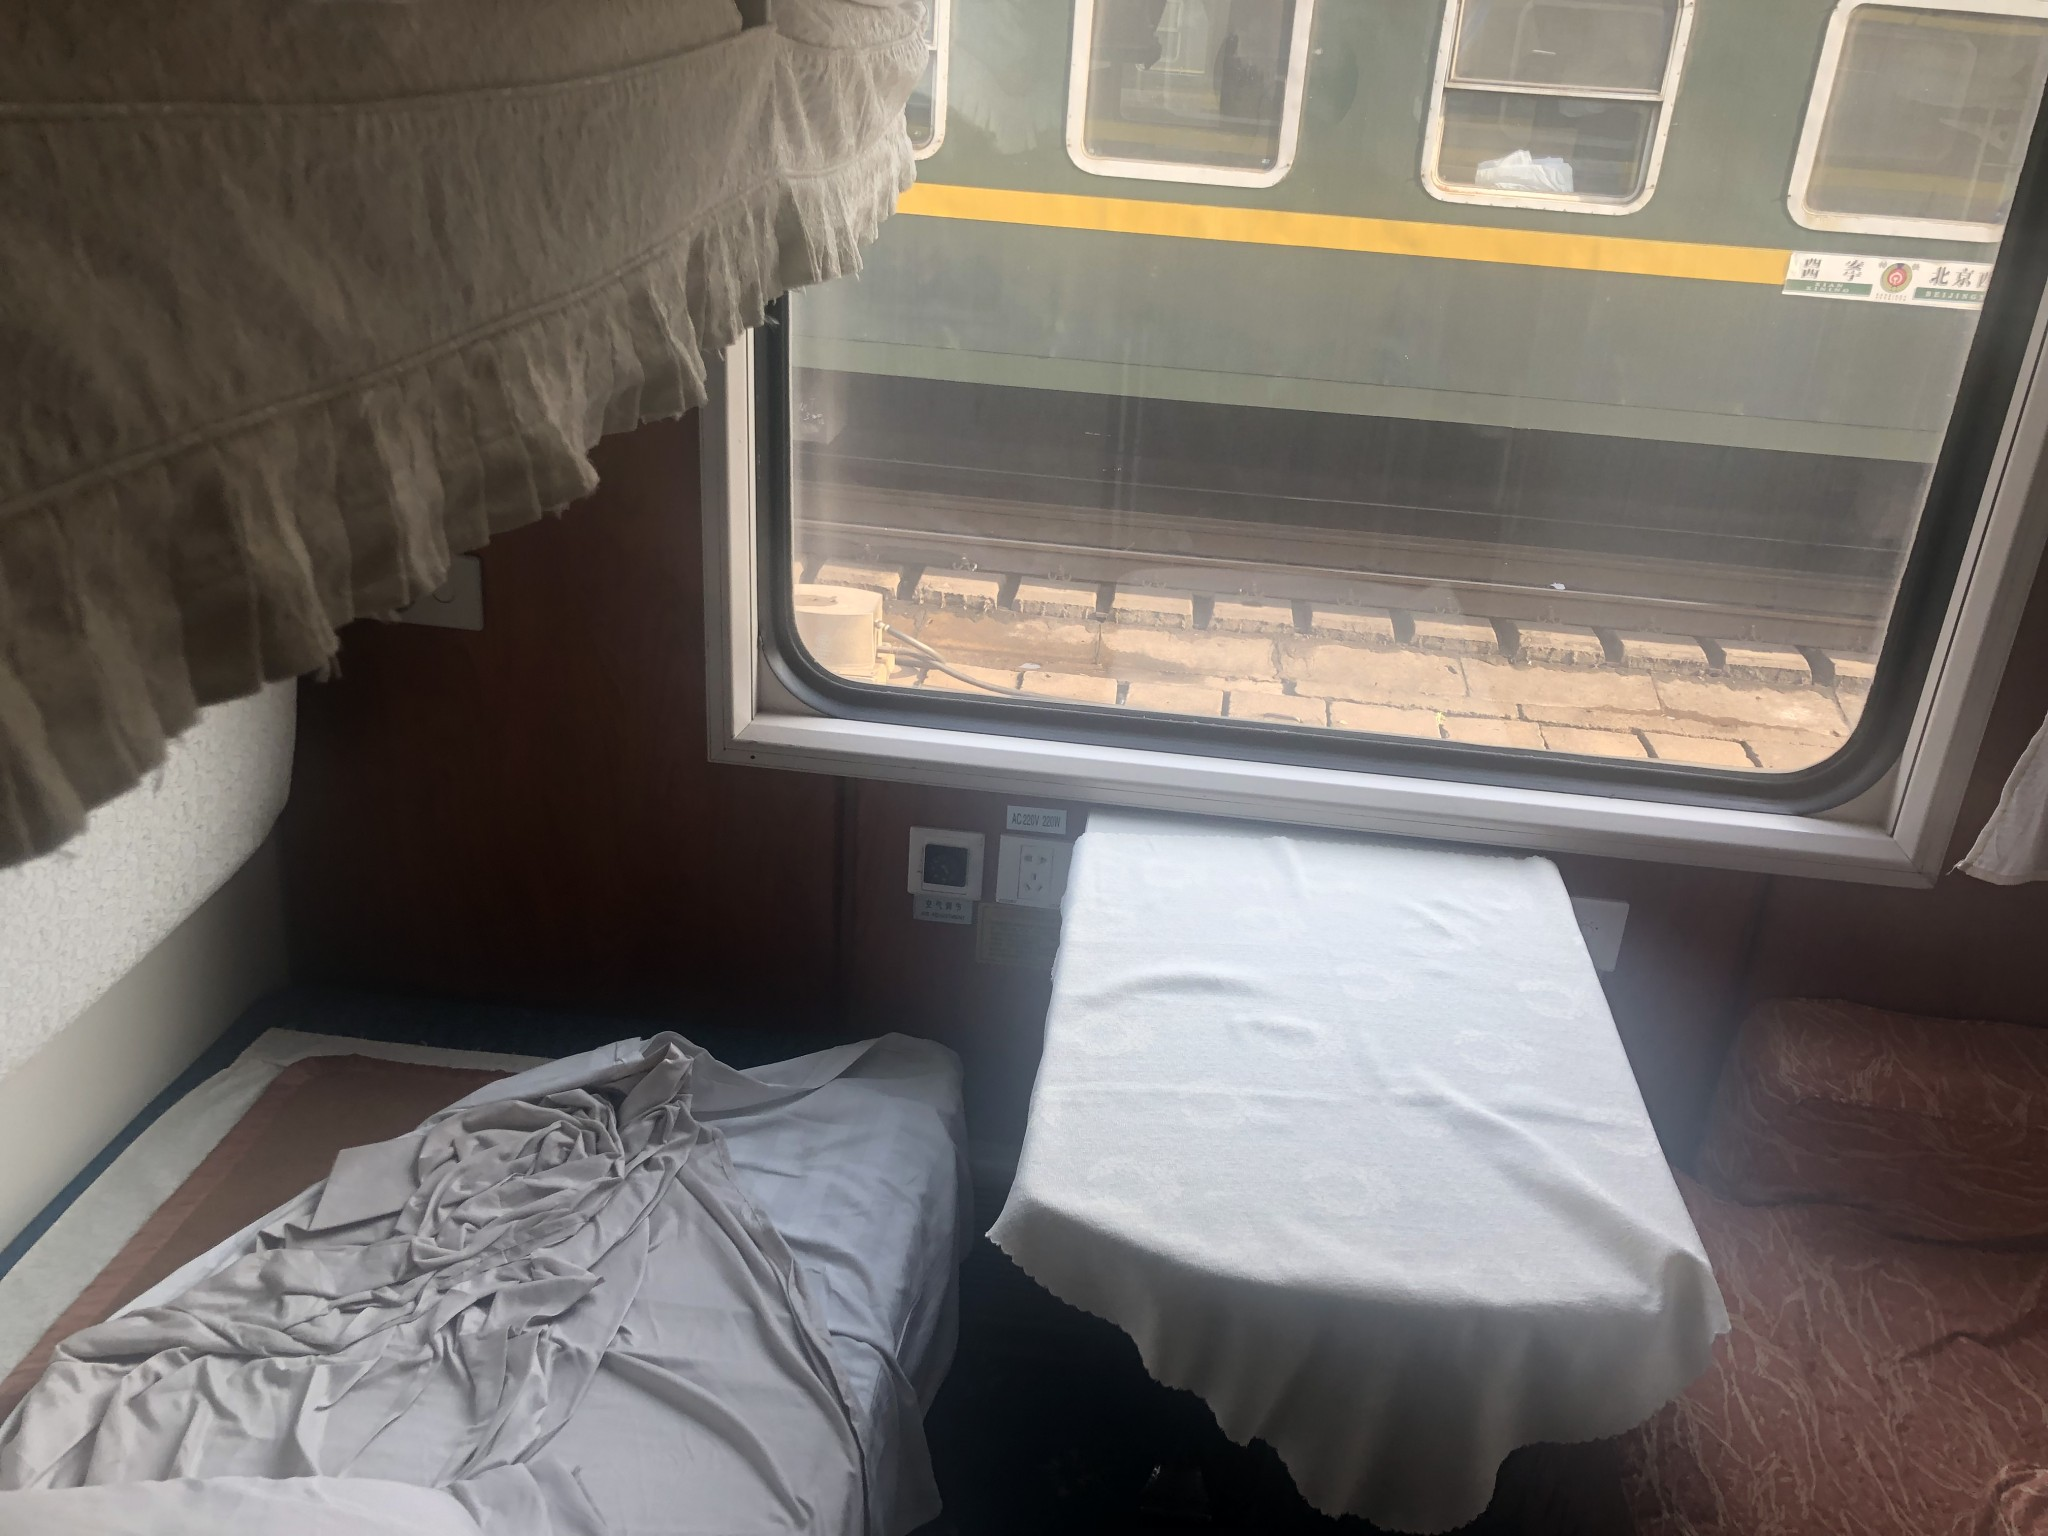 Taking the overnight Beijing to Xian train. Deluxe soft sleeper on the Z19 train in China.